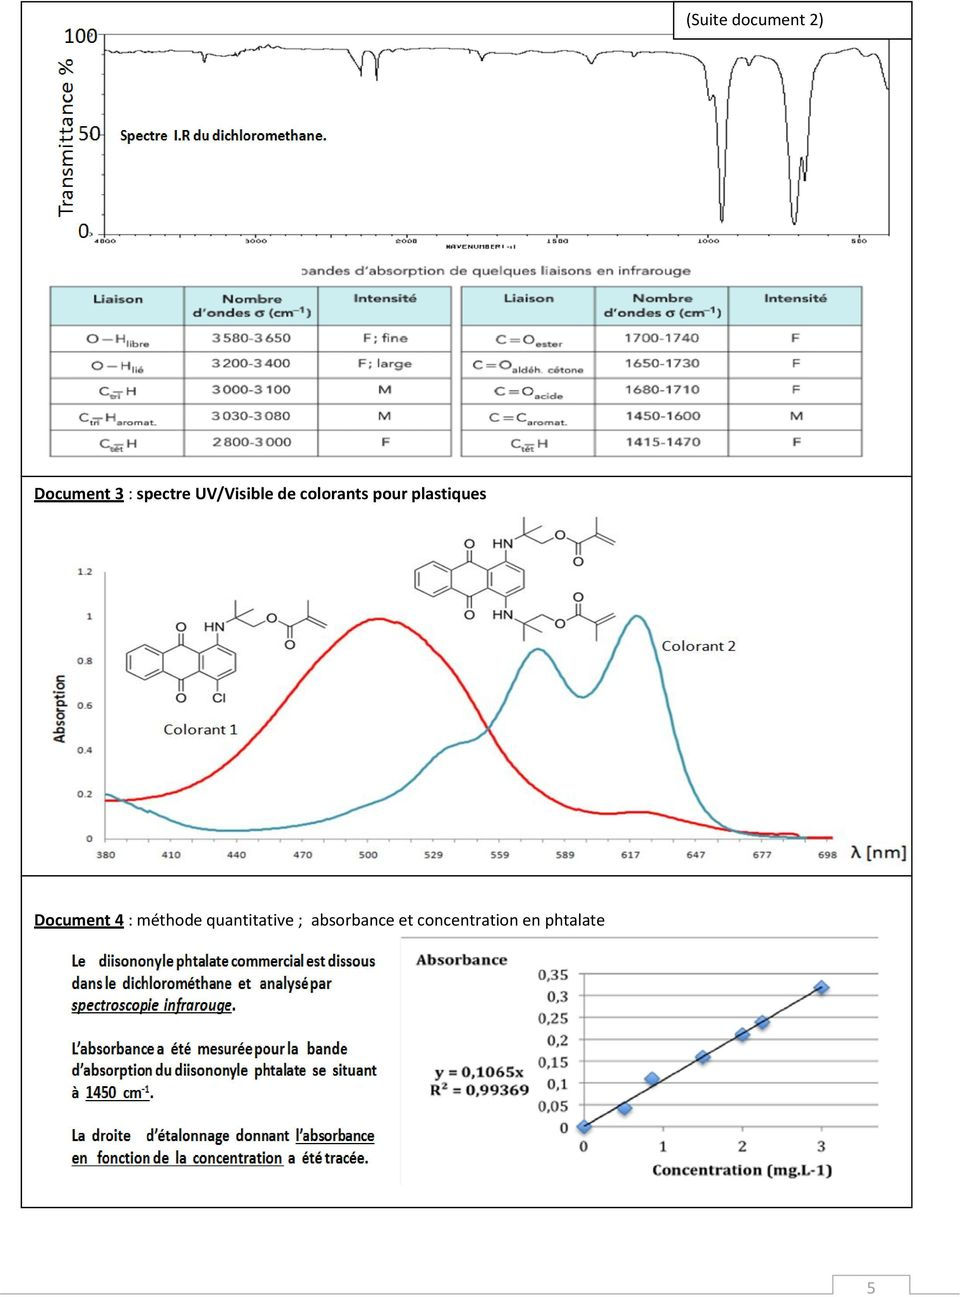 Document 4 : méthode quantitative ;